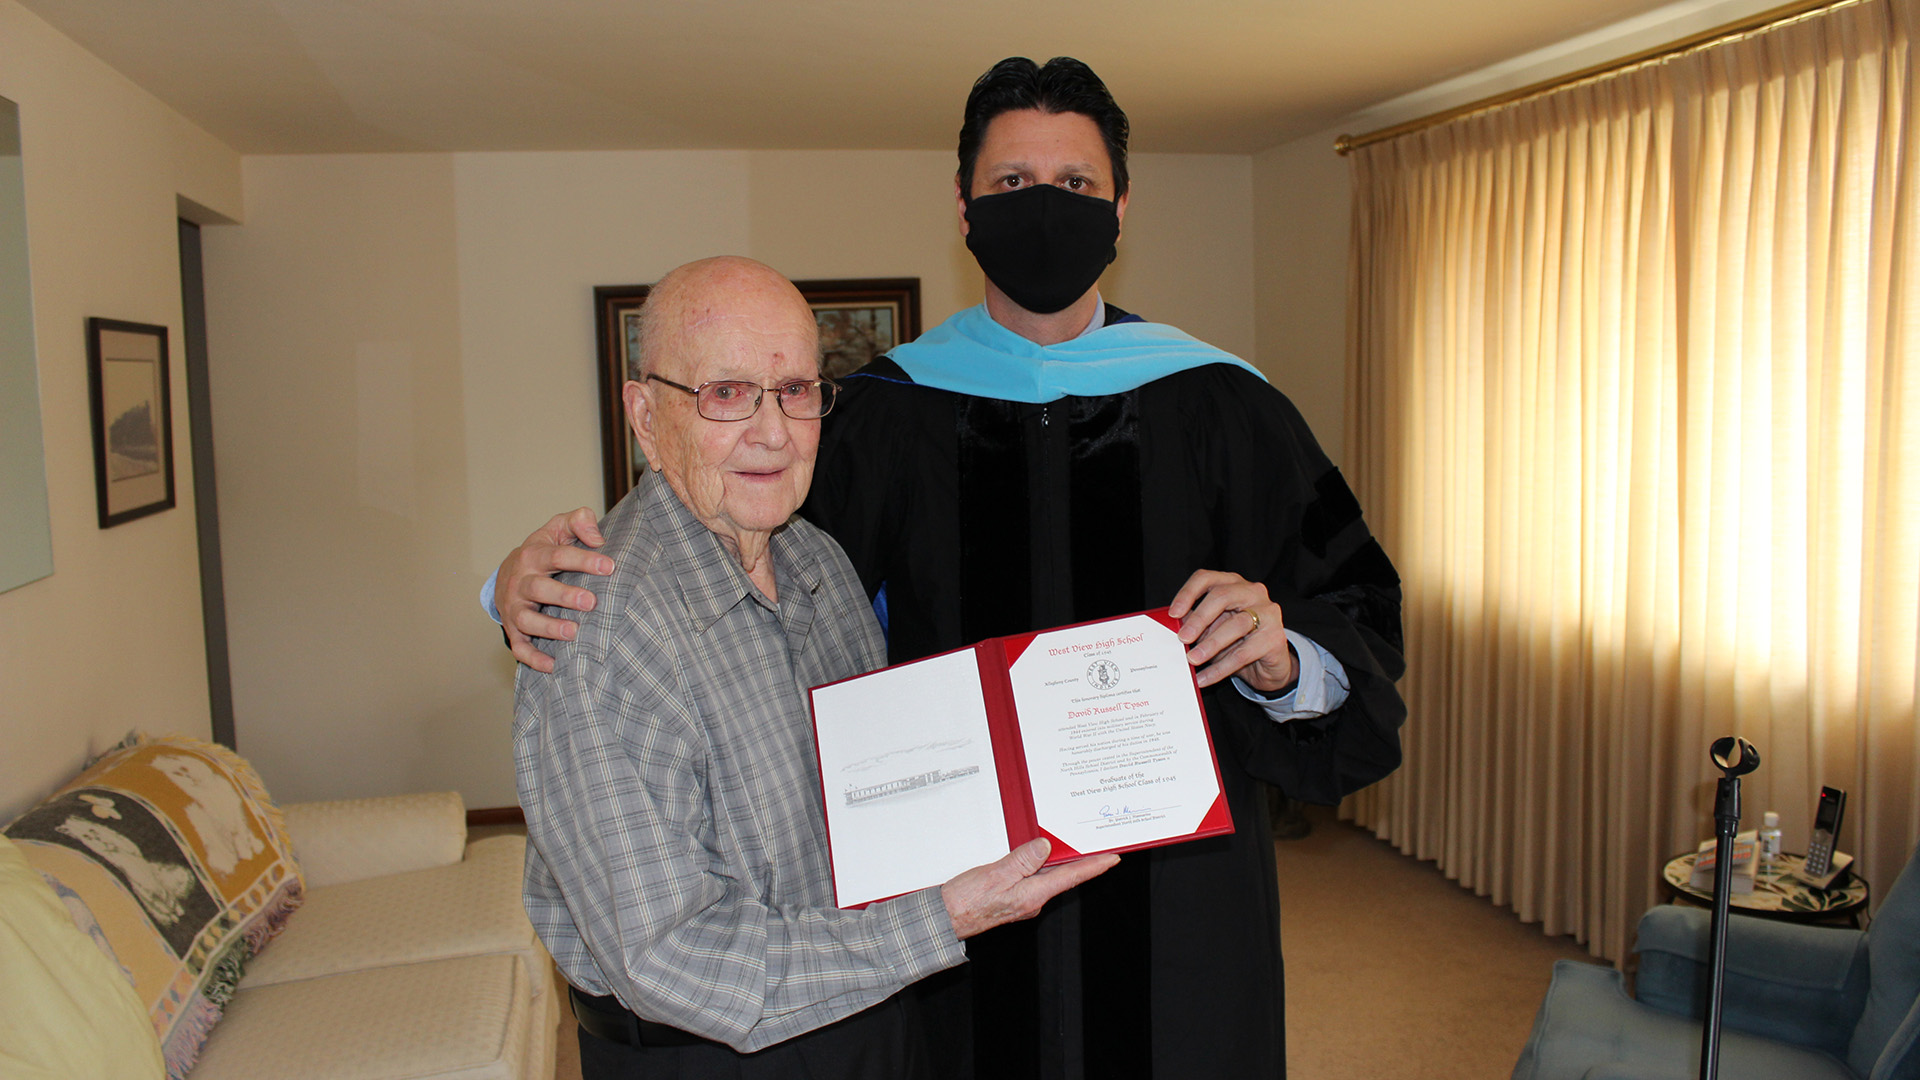 David Russell Tyson and Dr. Mannarino